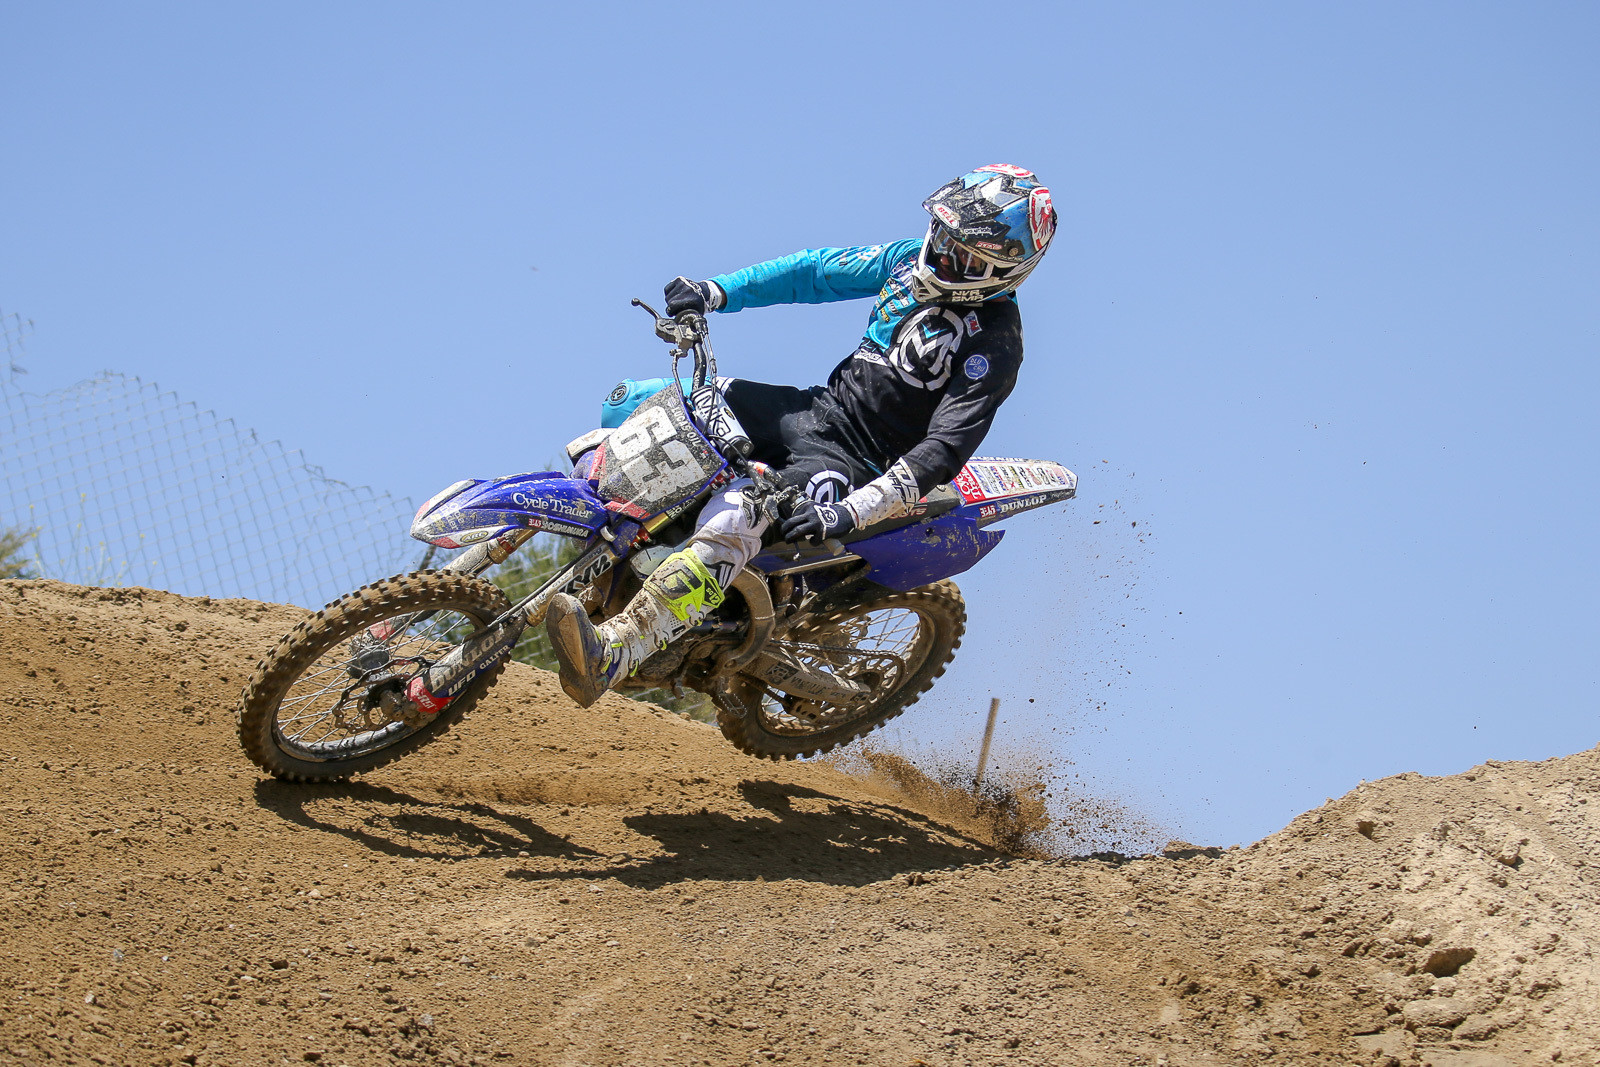 Hayden Mellross will be riding under the CycleTrader.com/Rock River/Yamaha tent this summer.